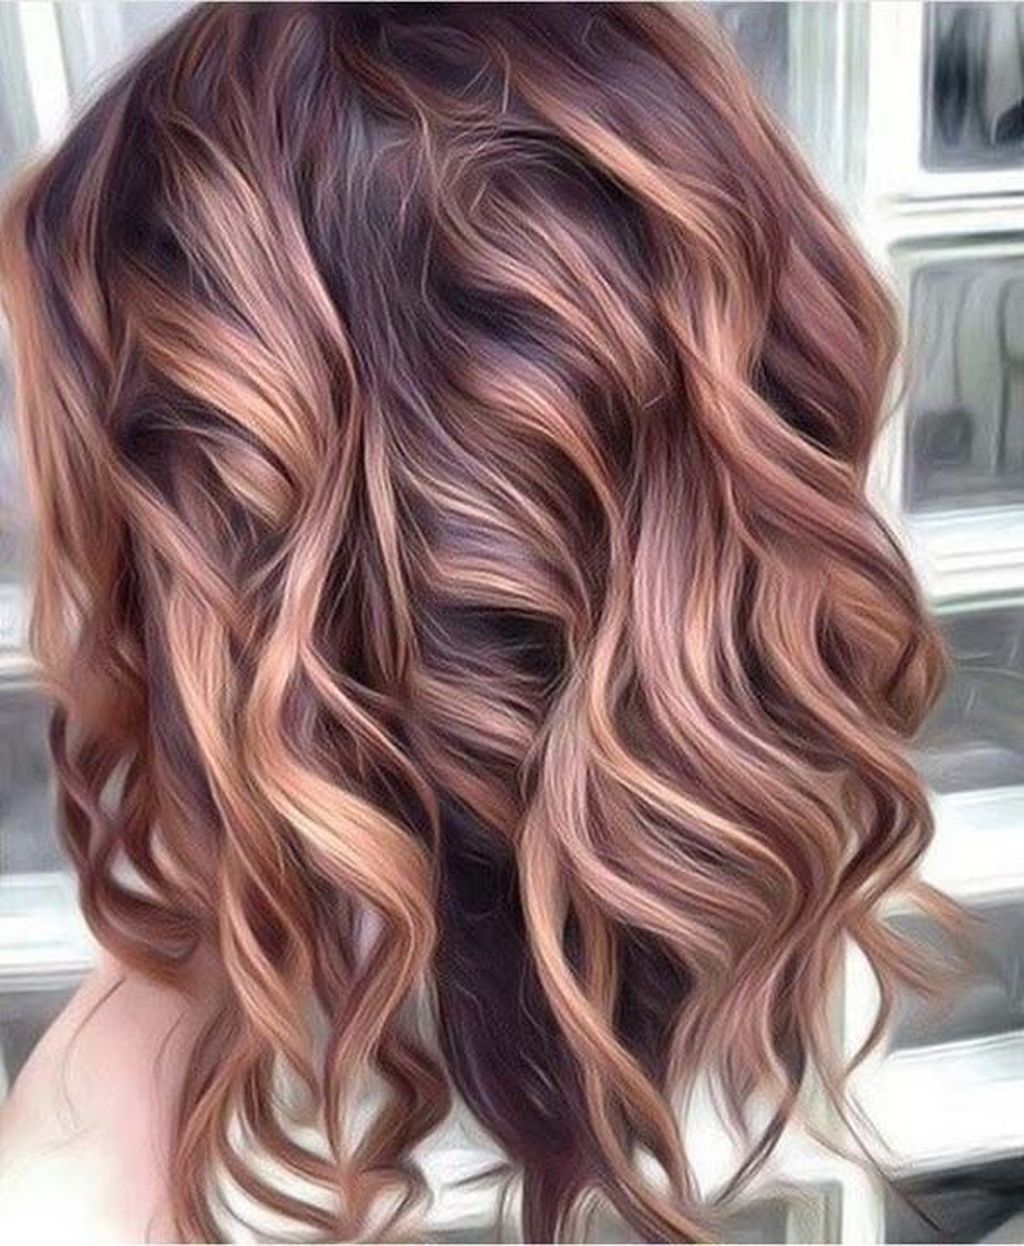 38 Unique Spring Hair Color Ideas For Brunettes With Images